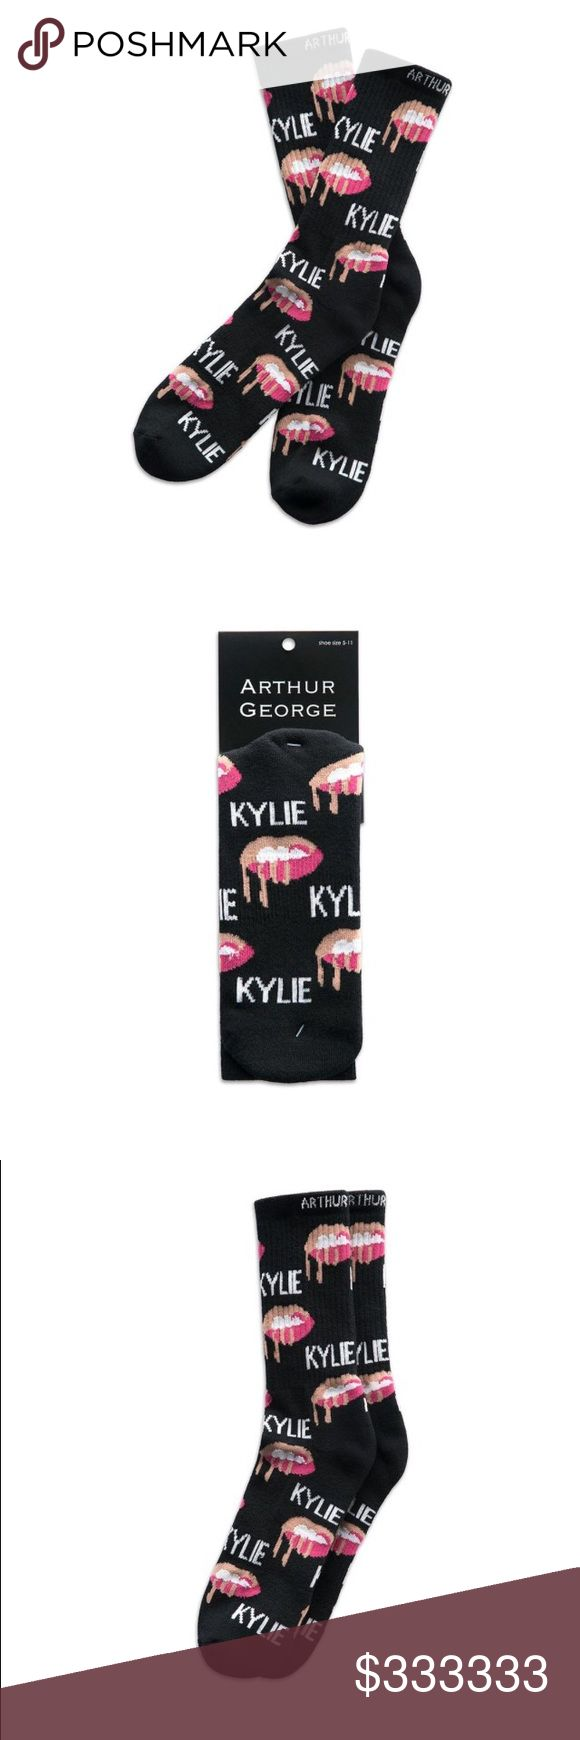 The Kylie Shop Socks! In hand, ready to ship!! Socks are made by Arthur George by Robert Kardashian and I have several other pairs of his socks and they are beyond comfy and are great quality socks!!!  NWT.  In hand and ready to ship today! Kylie Cosmetics Makeup